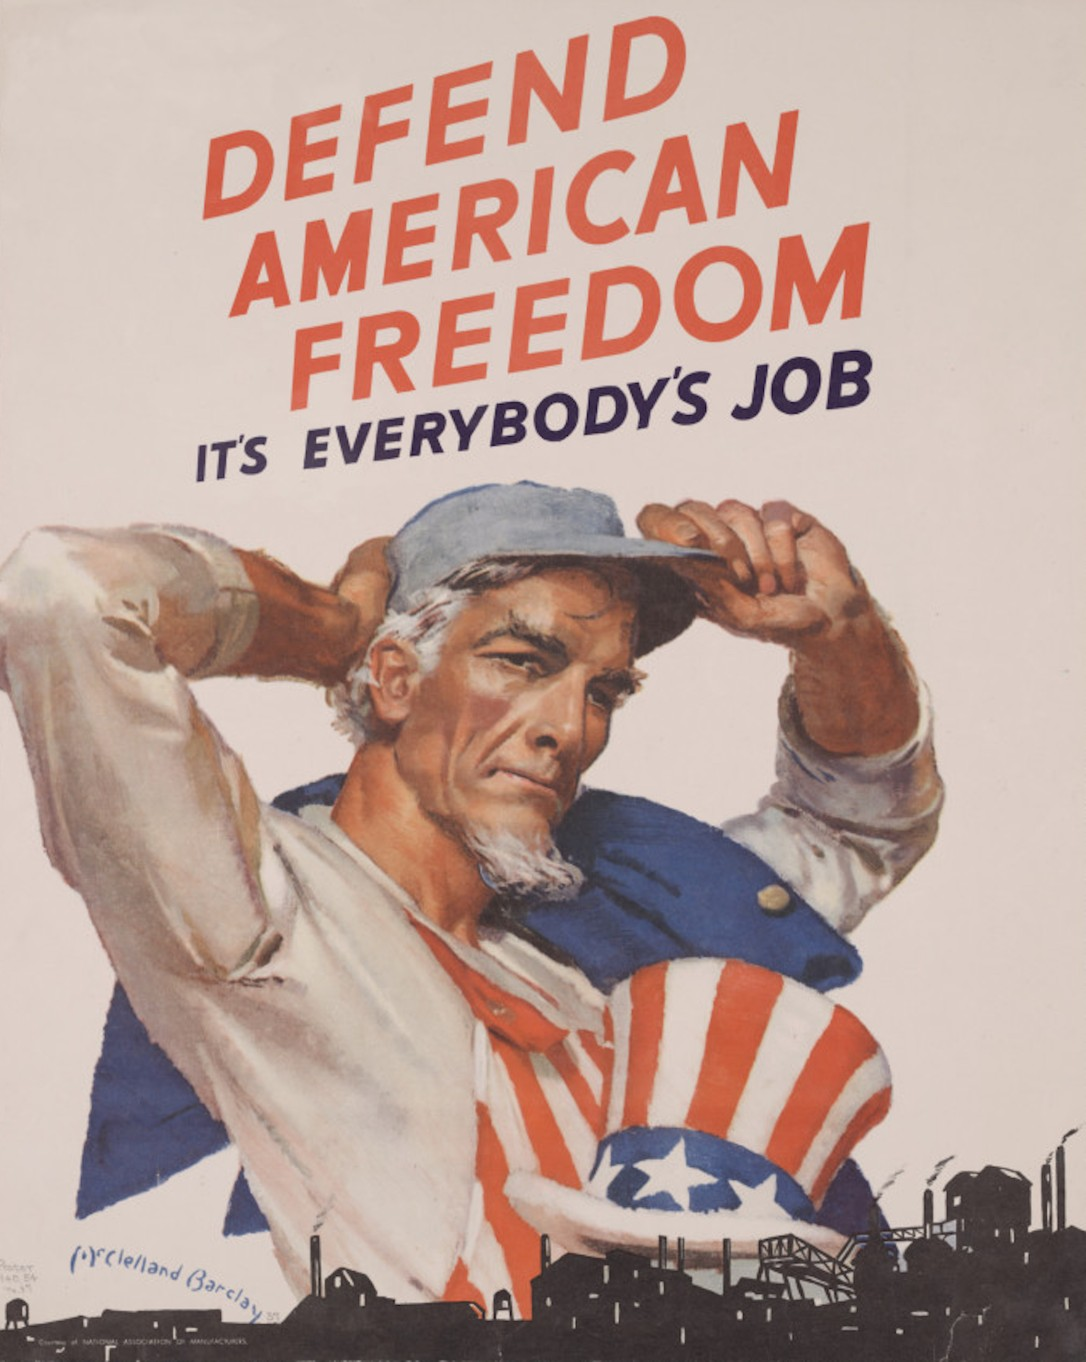 uncle sam freedom job